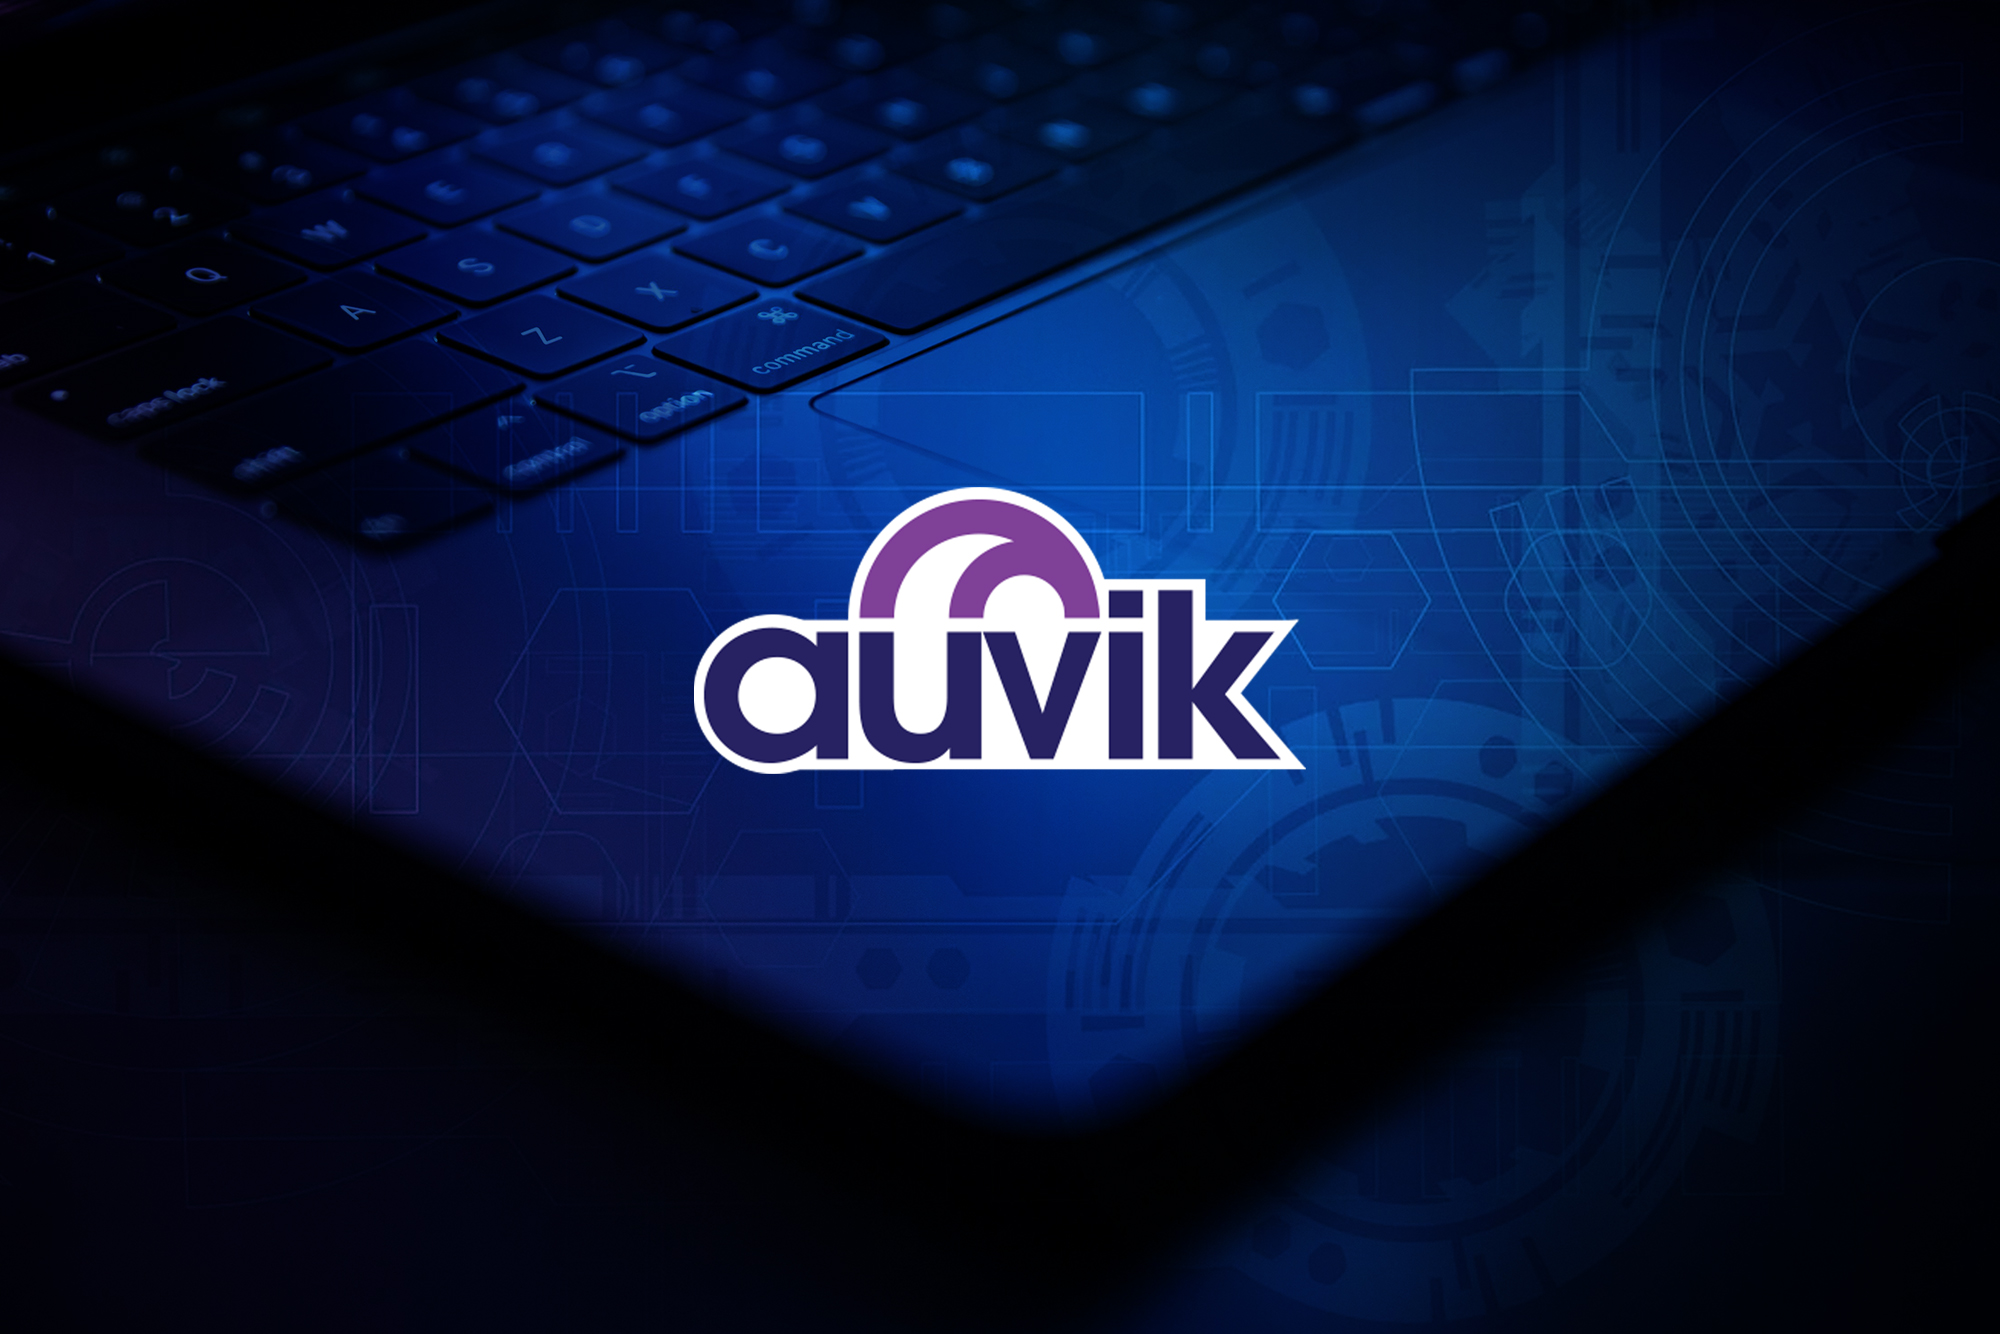 Dimly lit keyboard with Auvik logo over top